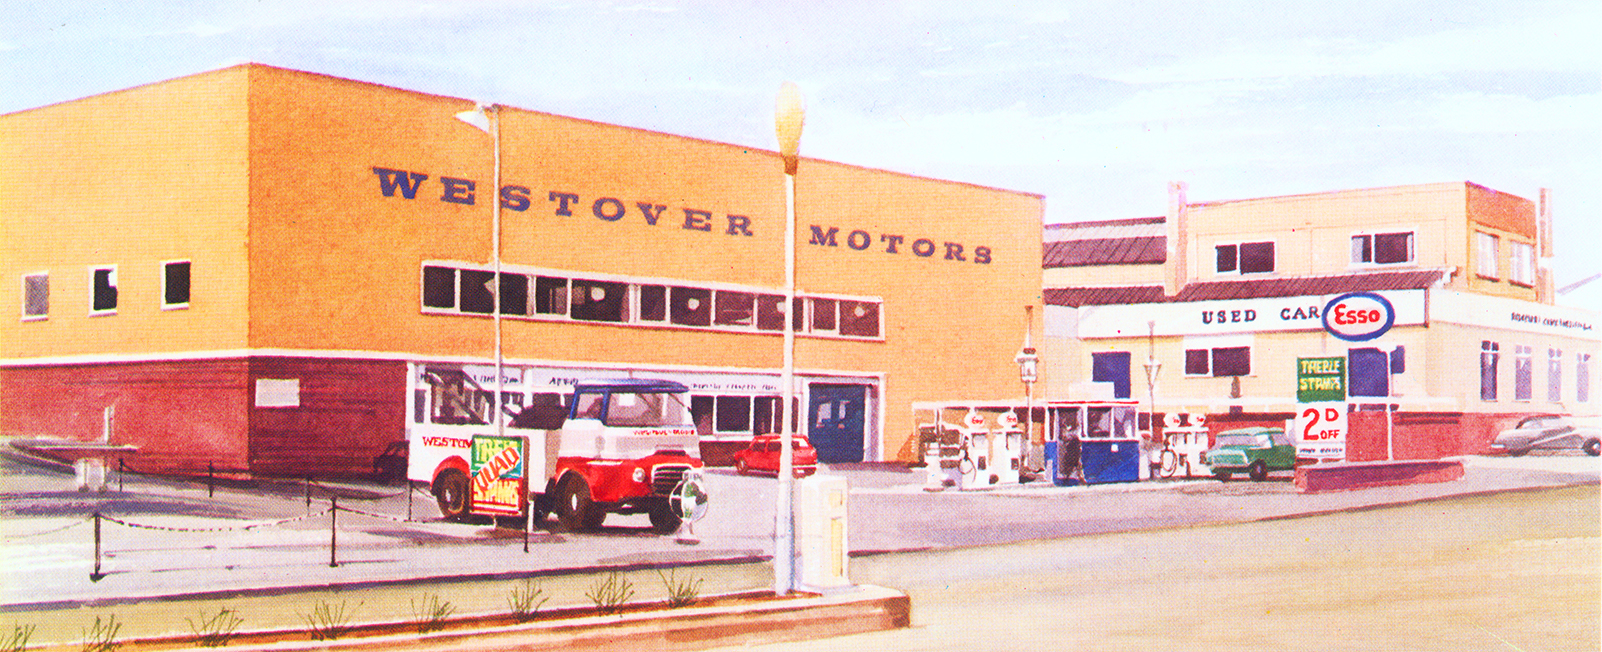 Westover Motors was a major acquisition for the Patrick Motors Group.